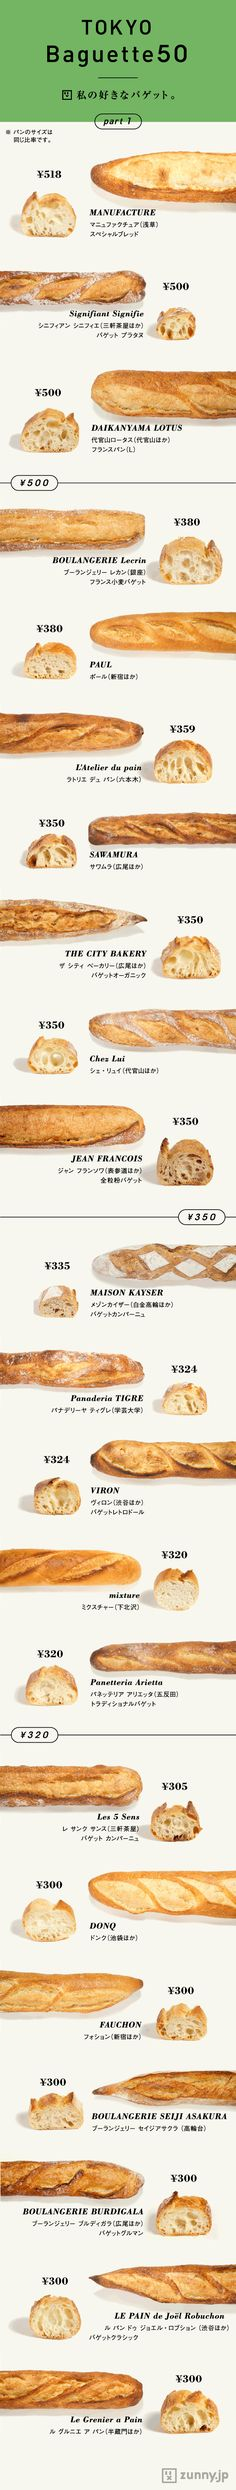 五感で味わう! 東京のおいしいバゲット50本 | ZUNNY インフォグラフィック・ニュース Food Graphic Design, Web Design, Japan Design, Food Design, Page Design, Layout Design, Restaurant Identity, Restaurant Design, Menu Book